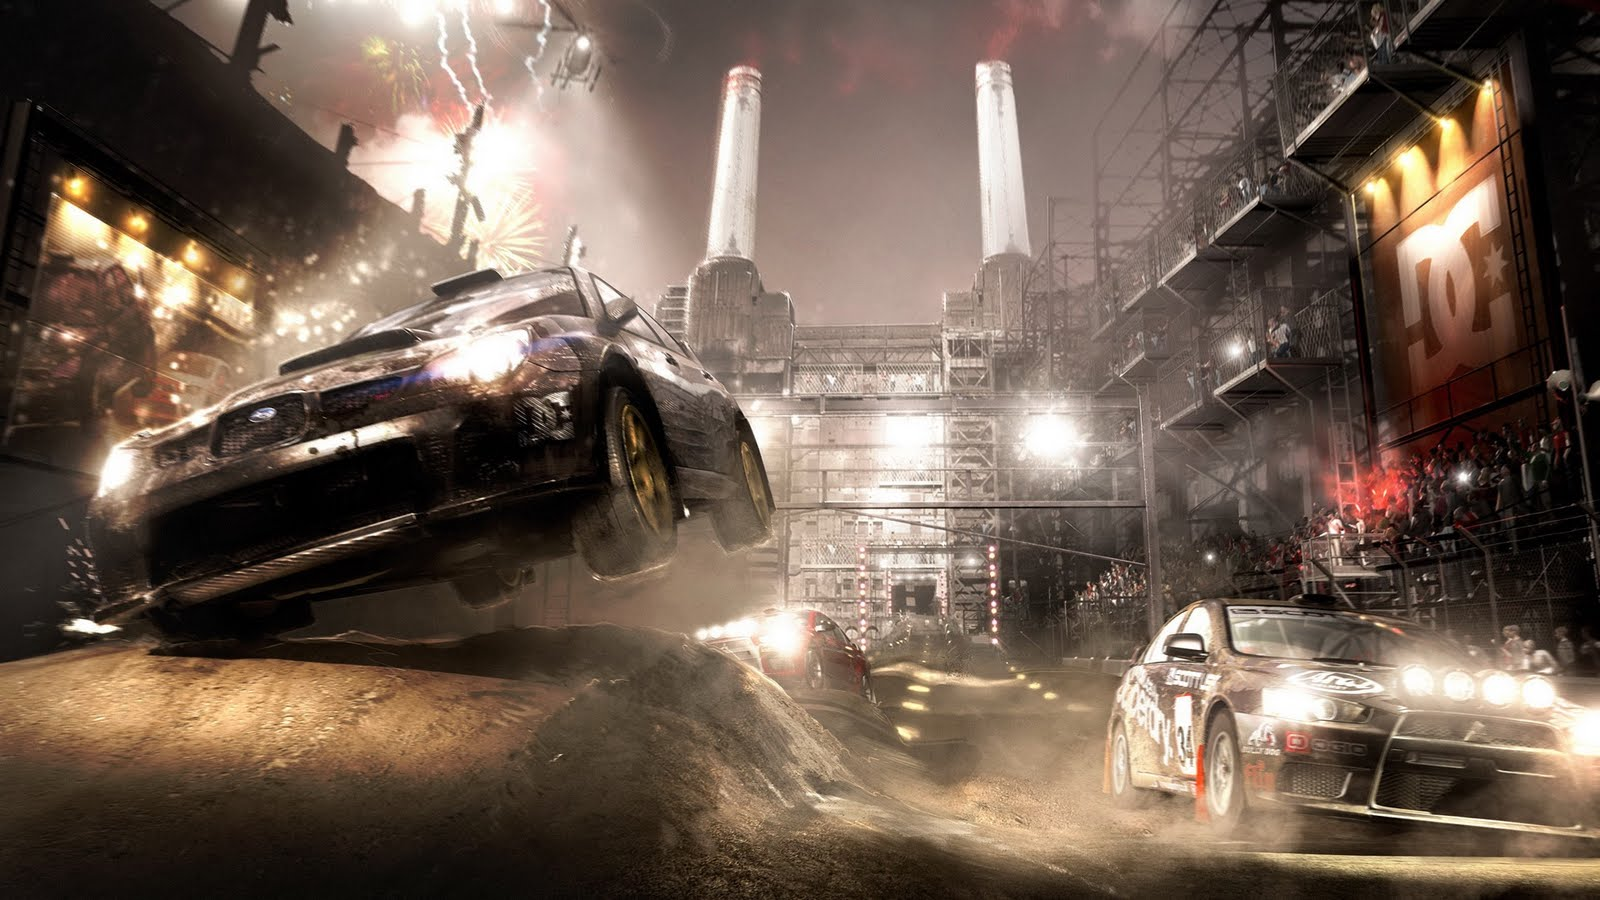 Watch Dogs High Resolution Games Hd Wallpaper For Mobile: Full HD Game Wallpapers